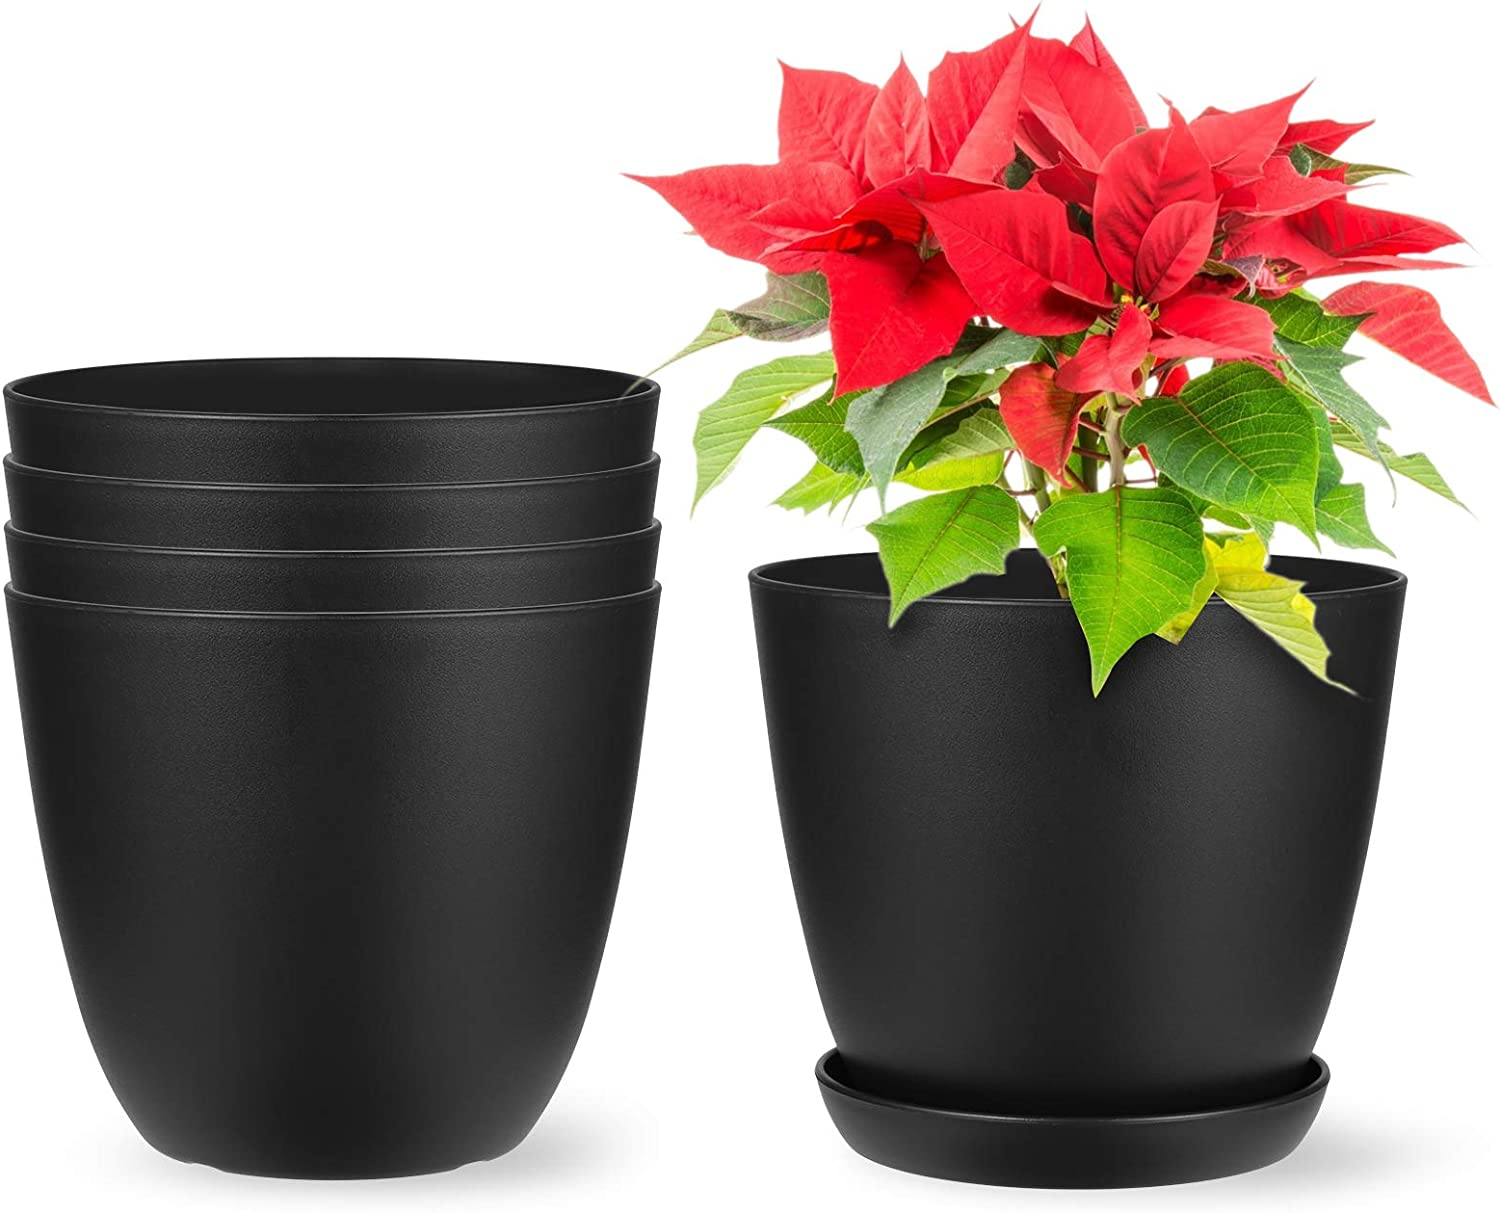 Akarden 5 Pack 6.5 Plastic Planters with Saucers Gardening Pot with Drainage for All Home Plants(Black)